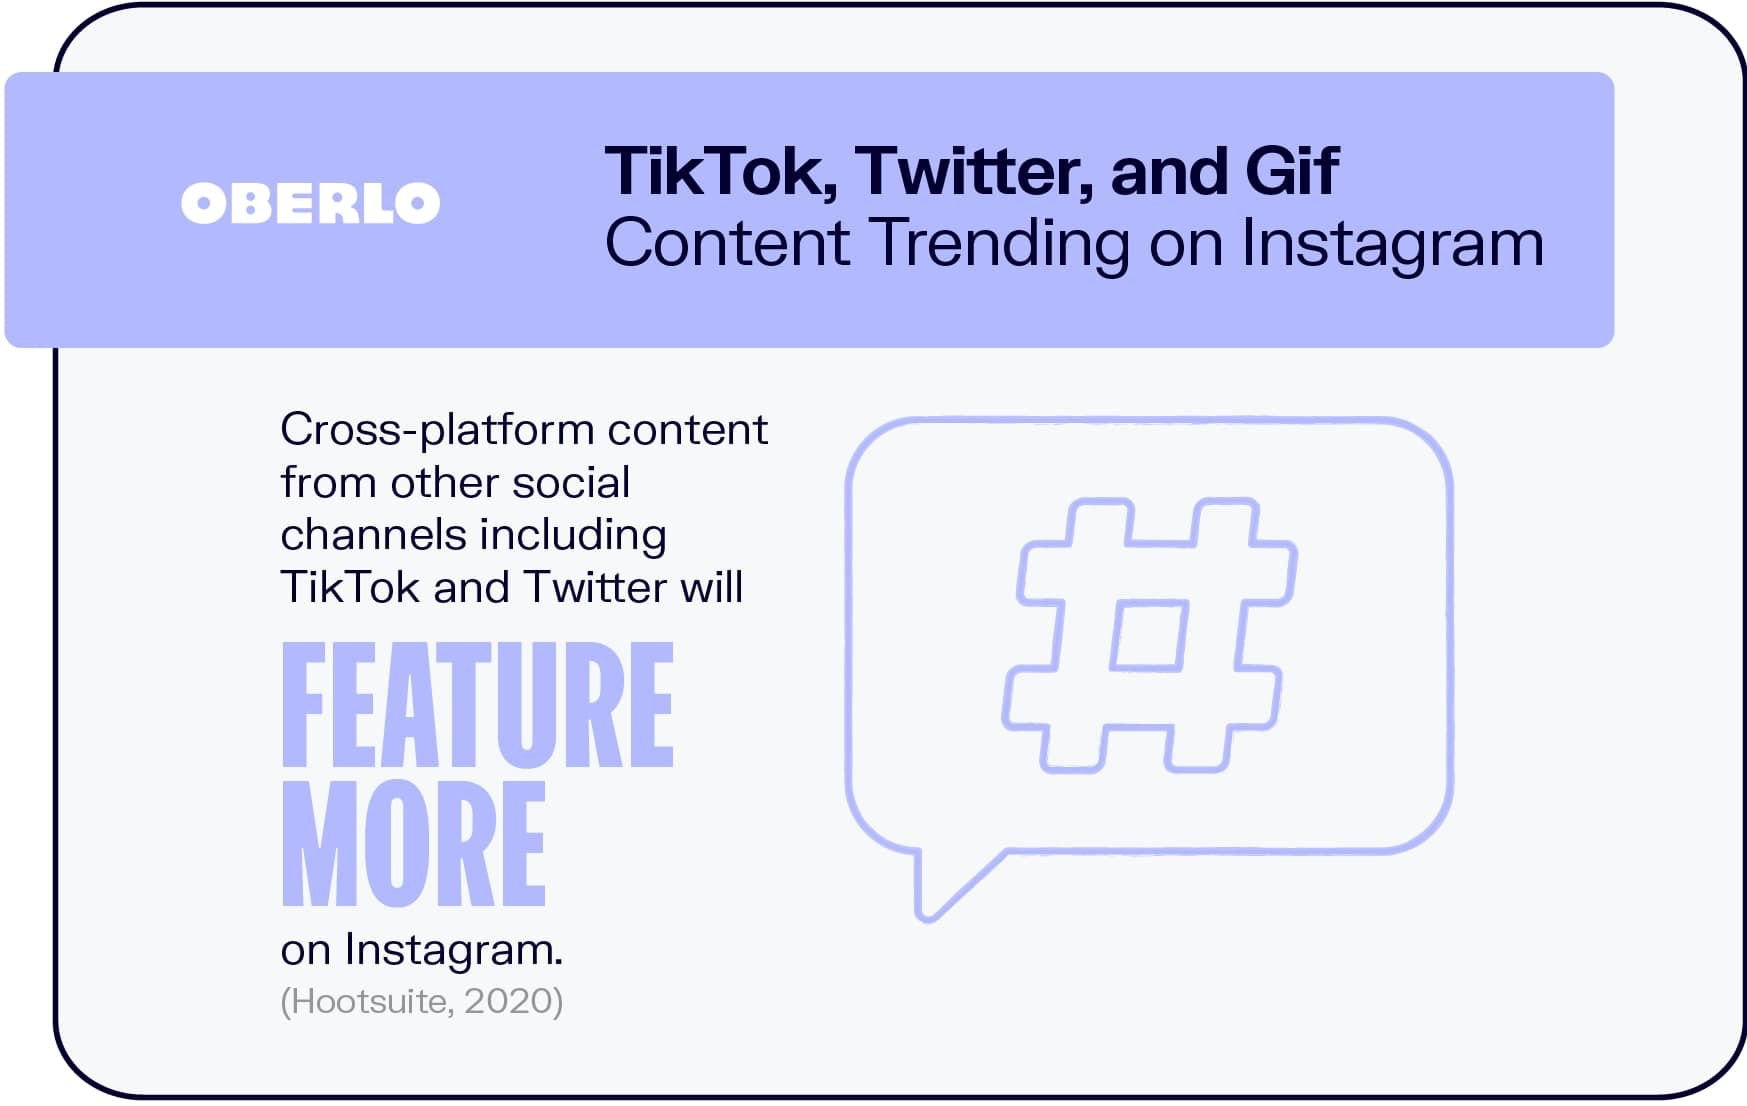 TikTok, Twitter, and Gif Content Trending on Instagram